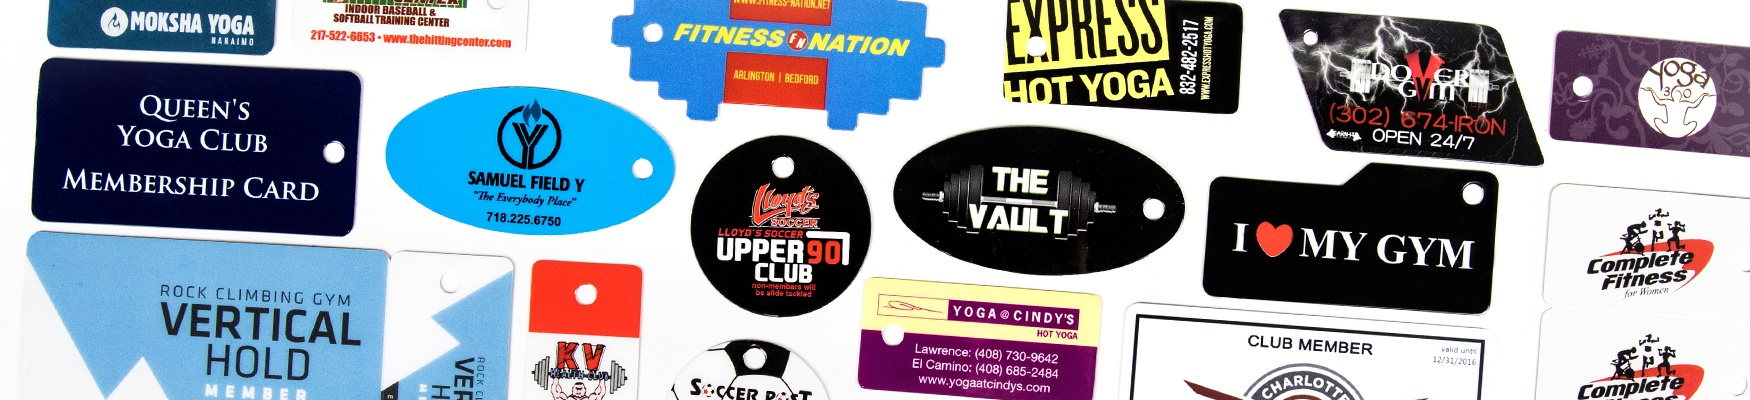 Fitness Center Membership Card and  Key Tags